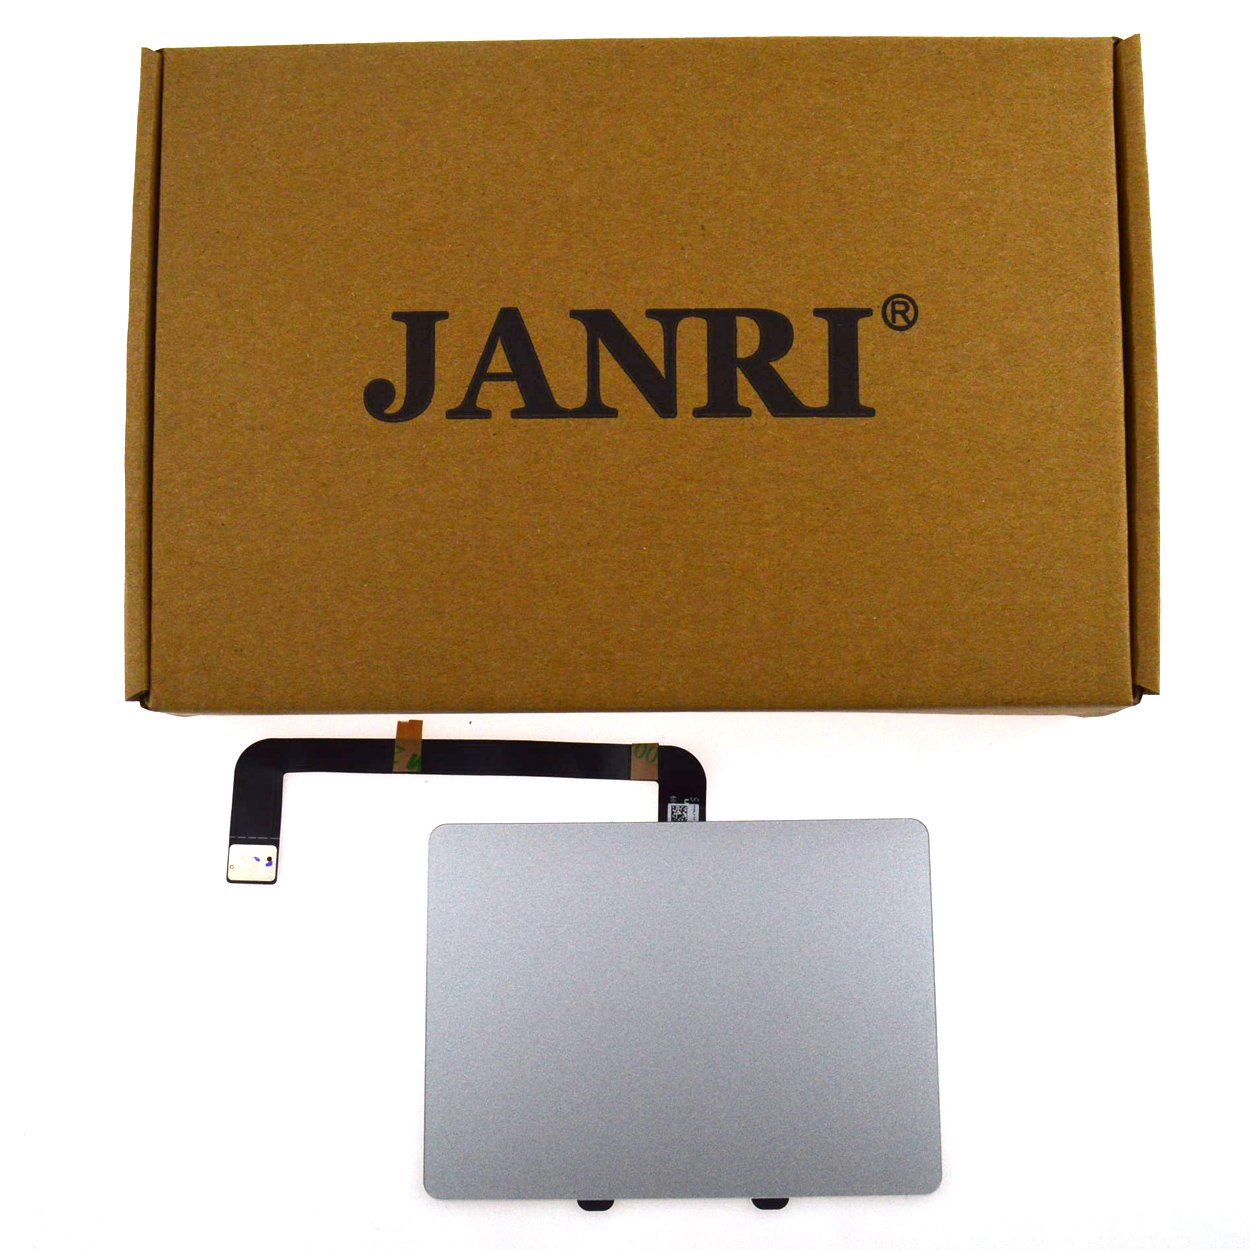 JANRI Replacement Touchpad Trackpad Mouse with Cable for MacBook Pro 15'' unibody A1286 (Mid 2009, Mid 2010, Early 2011, Late 2011, Mid 2012) 922-9035 922-9306 922-9749 821-0832-A